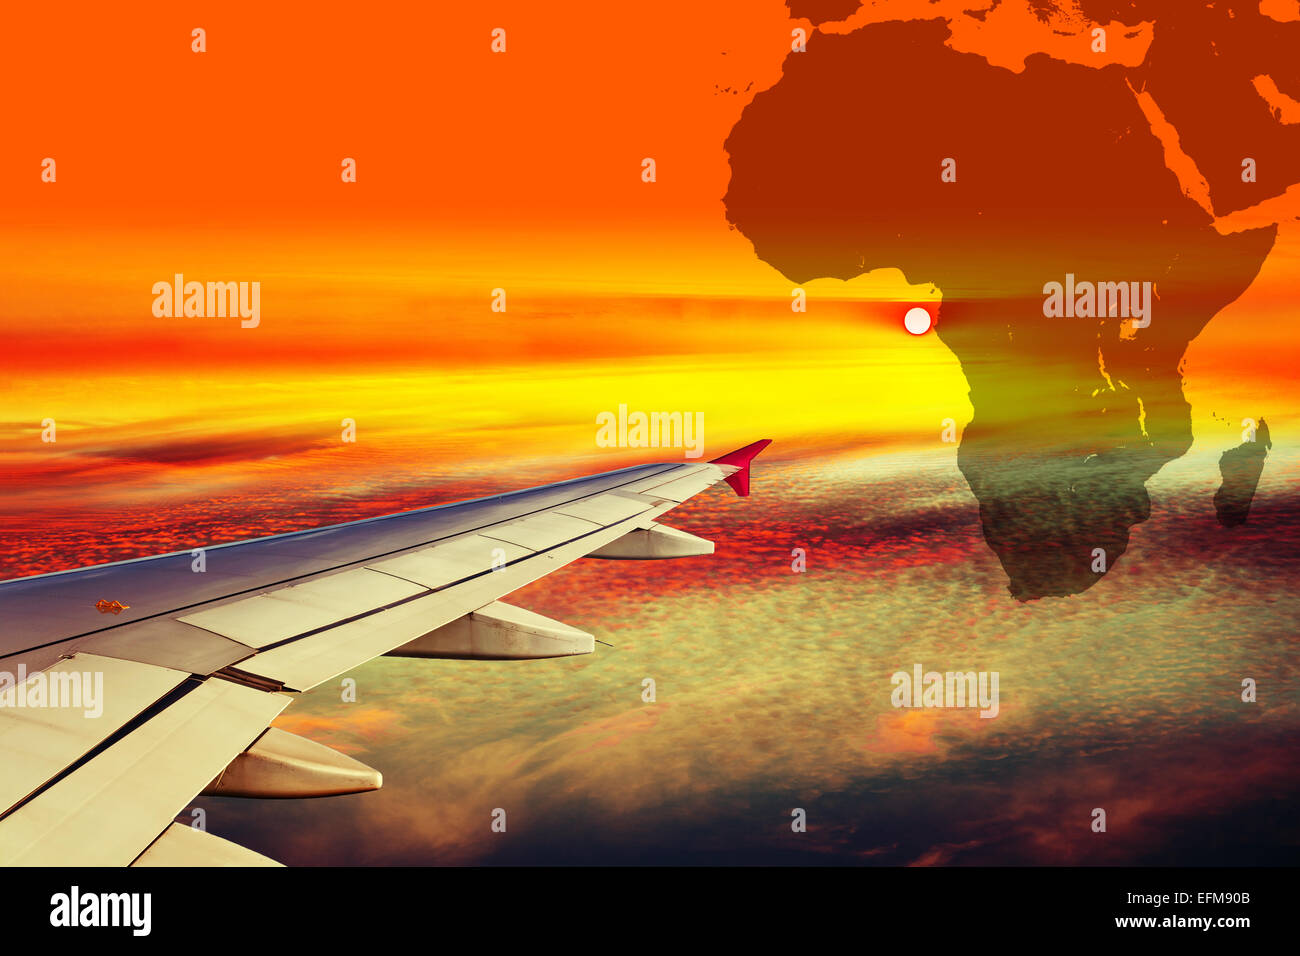 Africa Map Background.Wing Airplane On Africa Map Background Stock Photo 78507419 Alamy